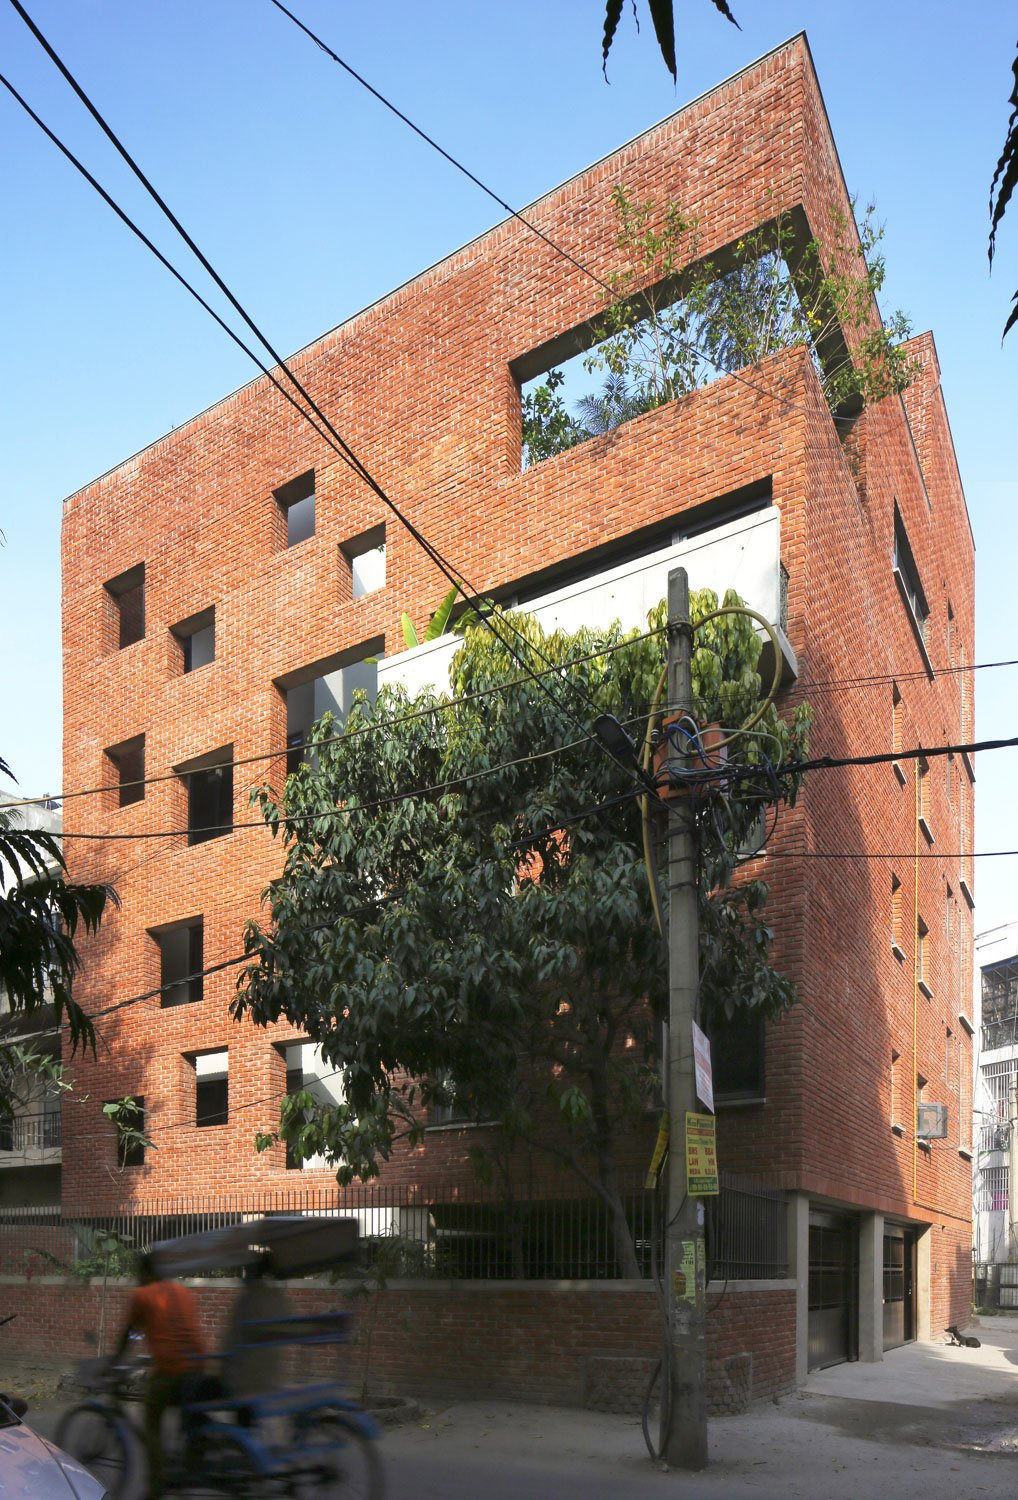 The Brick Veil becomes a buffer between the House and the City Edmund Sumner}